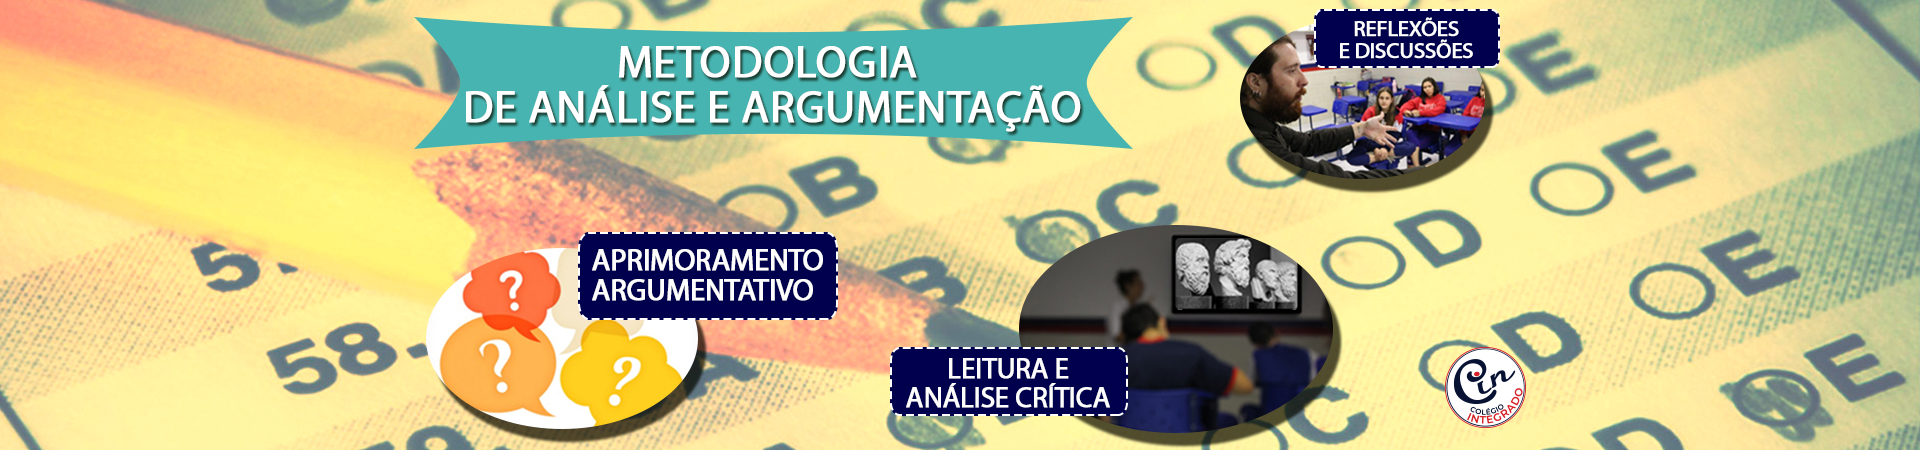 metodologia-de-analise